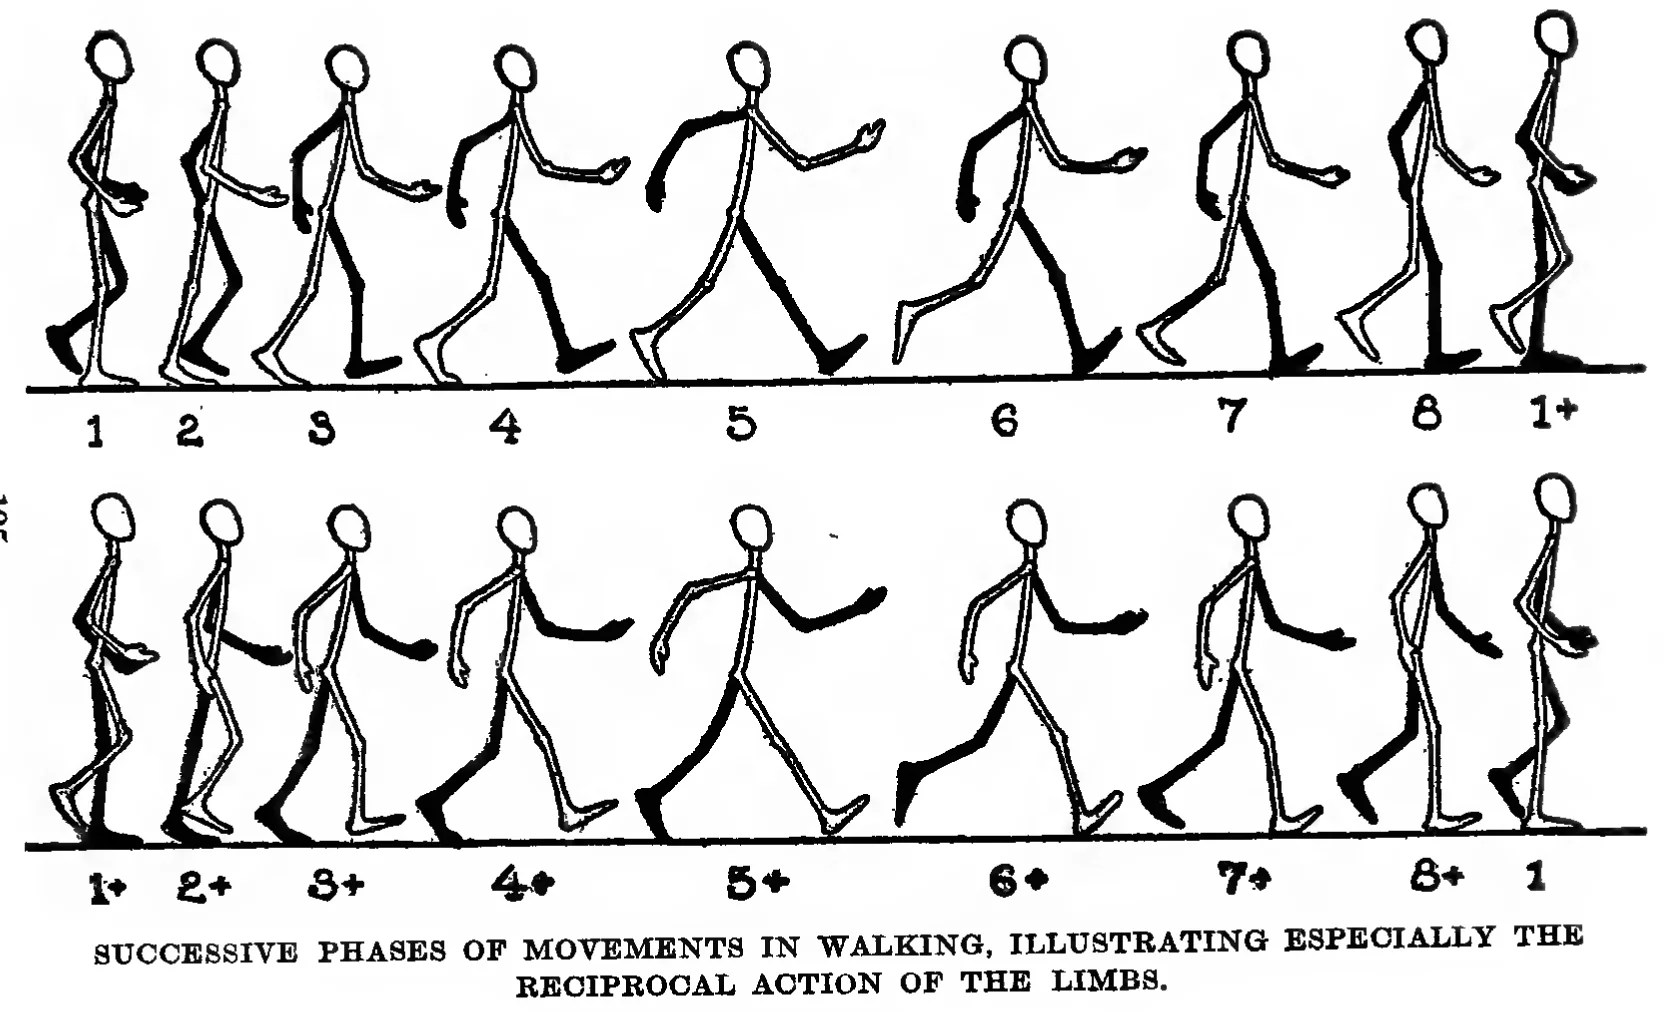 How To Draw And Animate A Person Walking Or Running